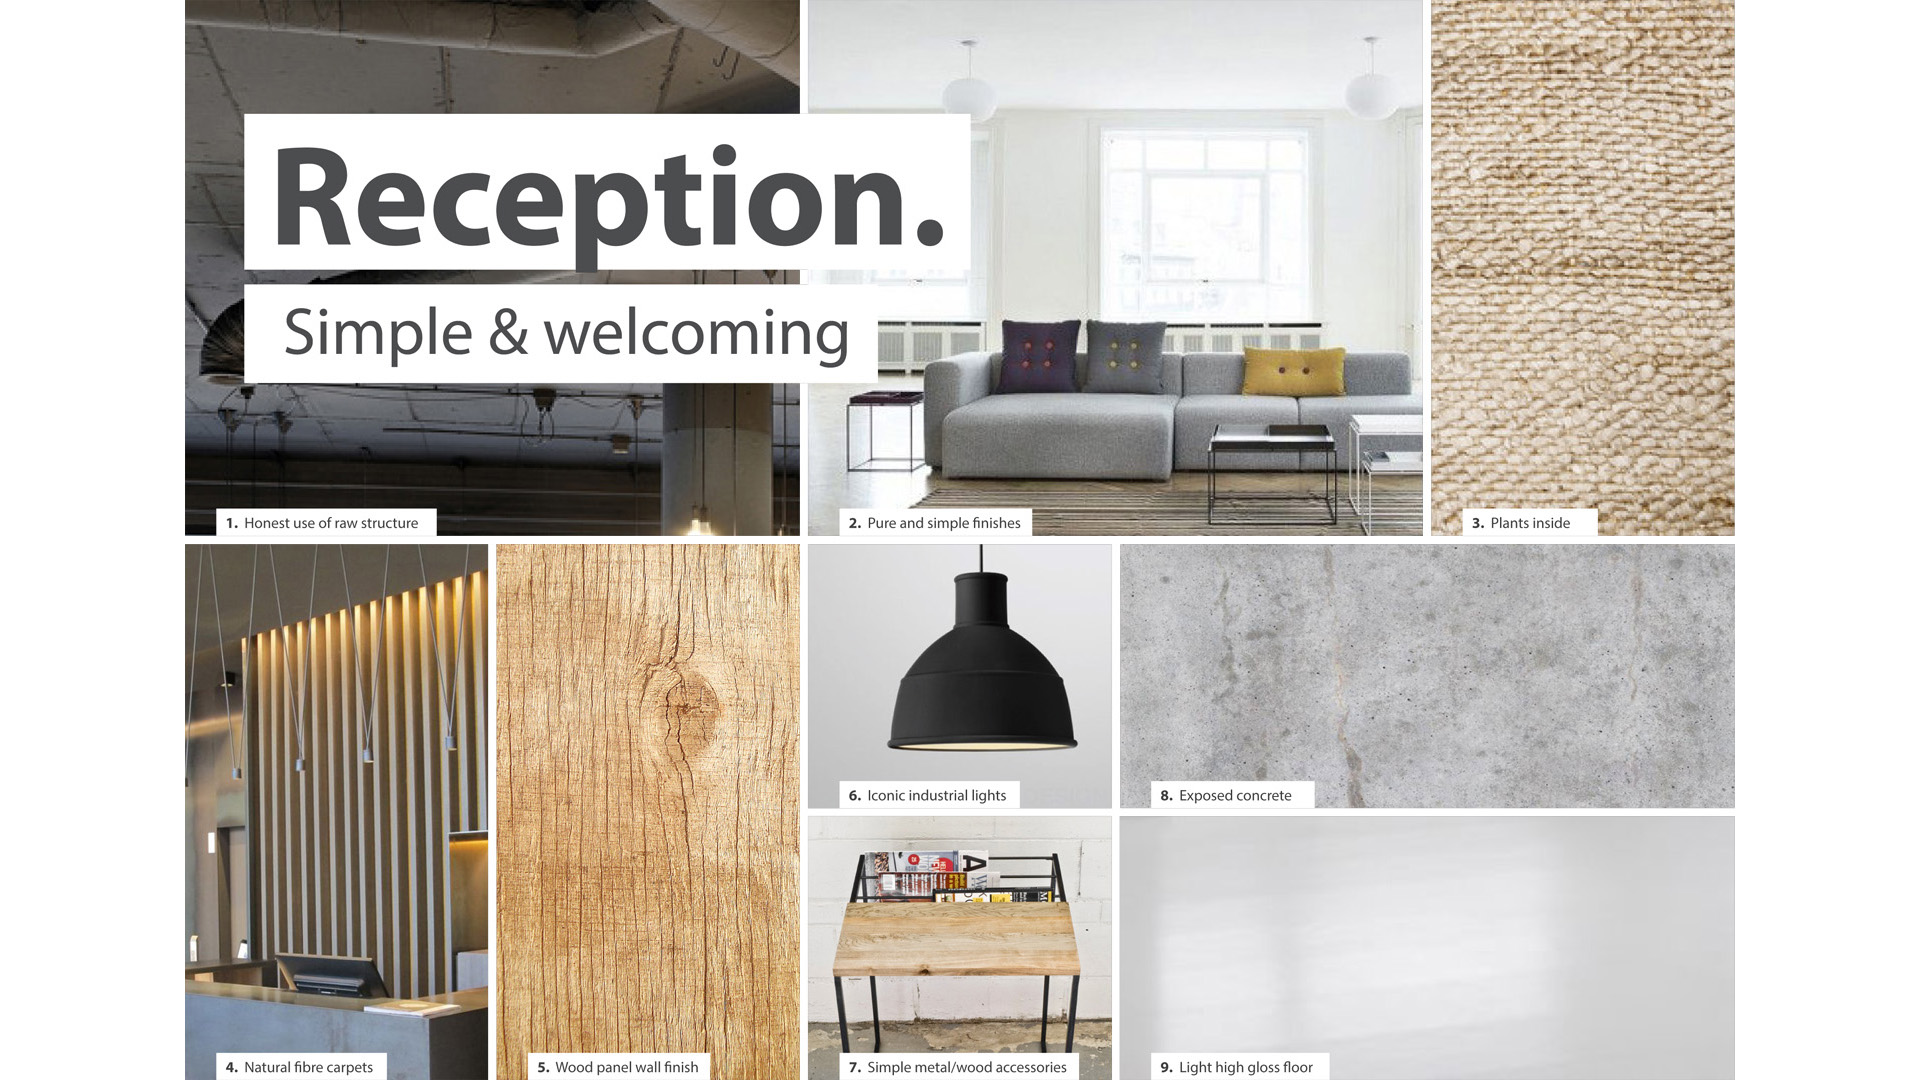 DESIGN MOODBOARD OF RECPETION AREA